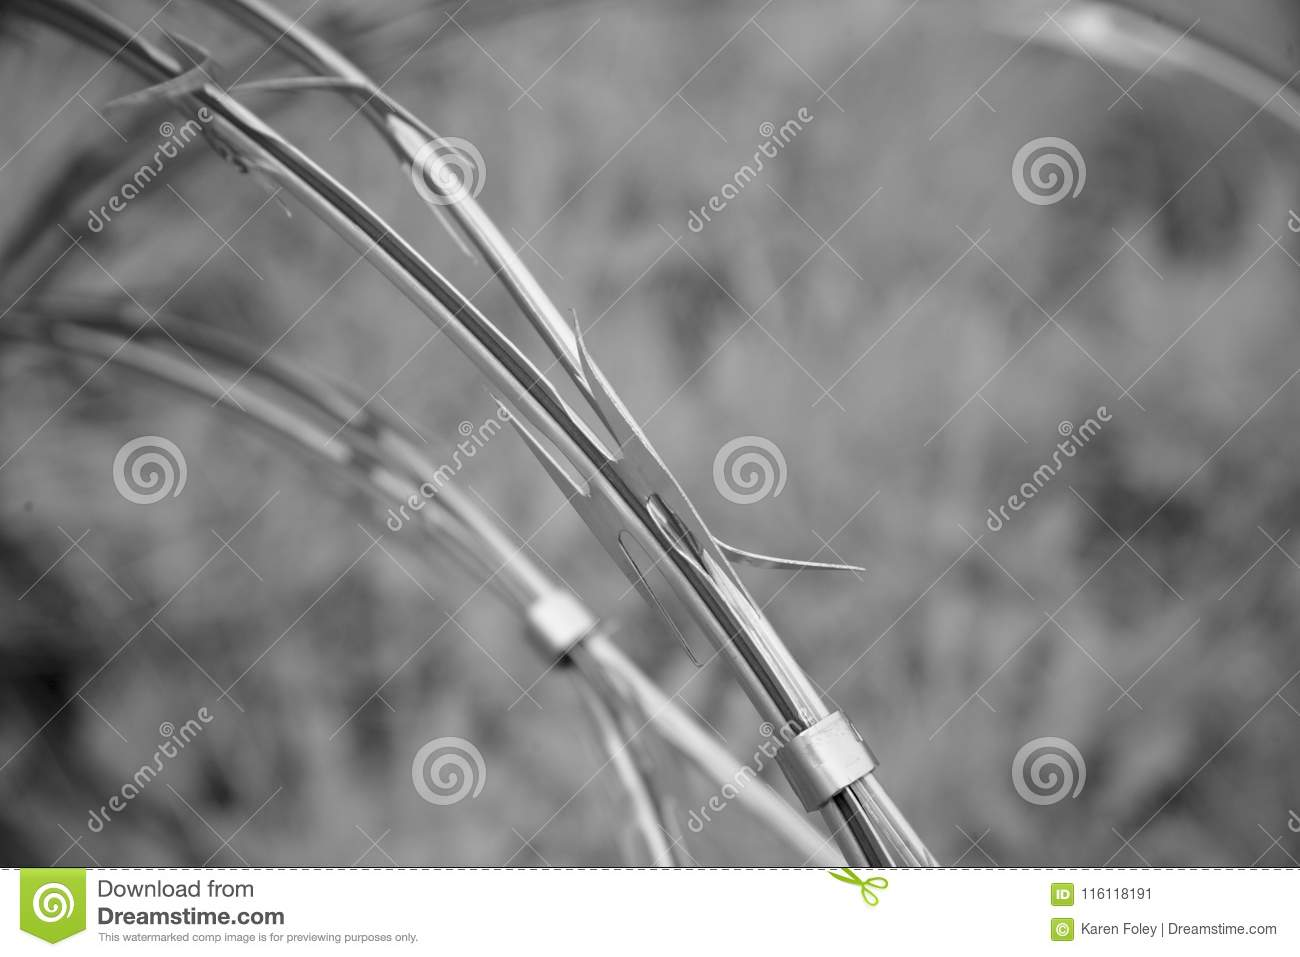 Black and white razor wire stock image. Image of coil - 116118191